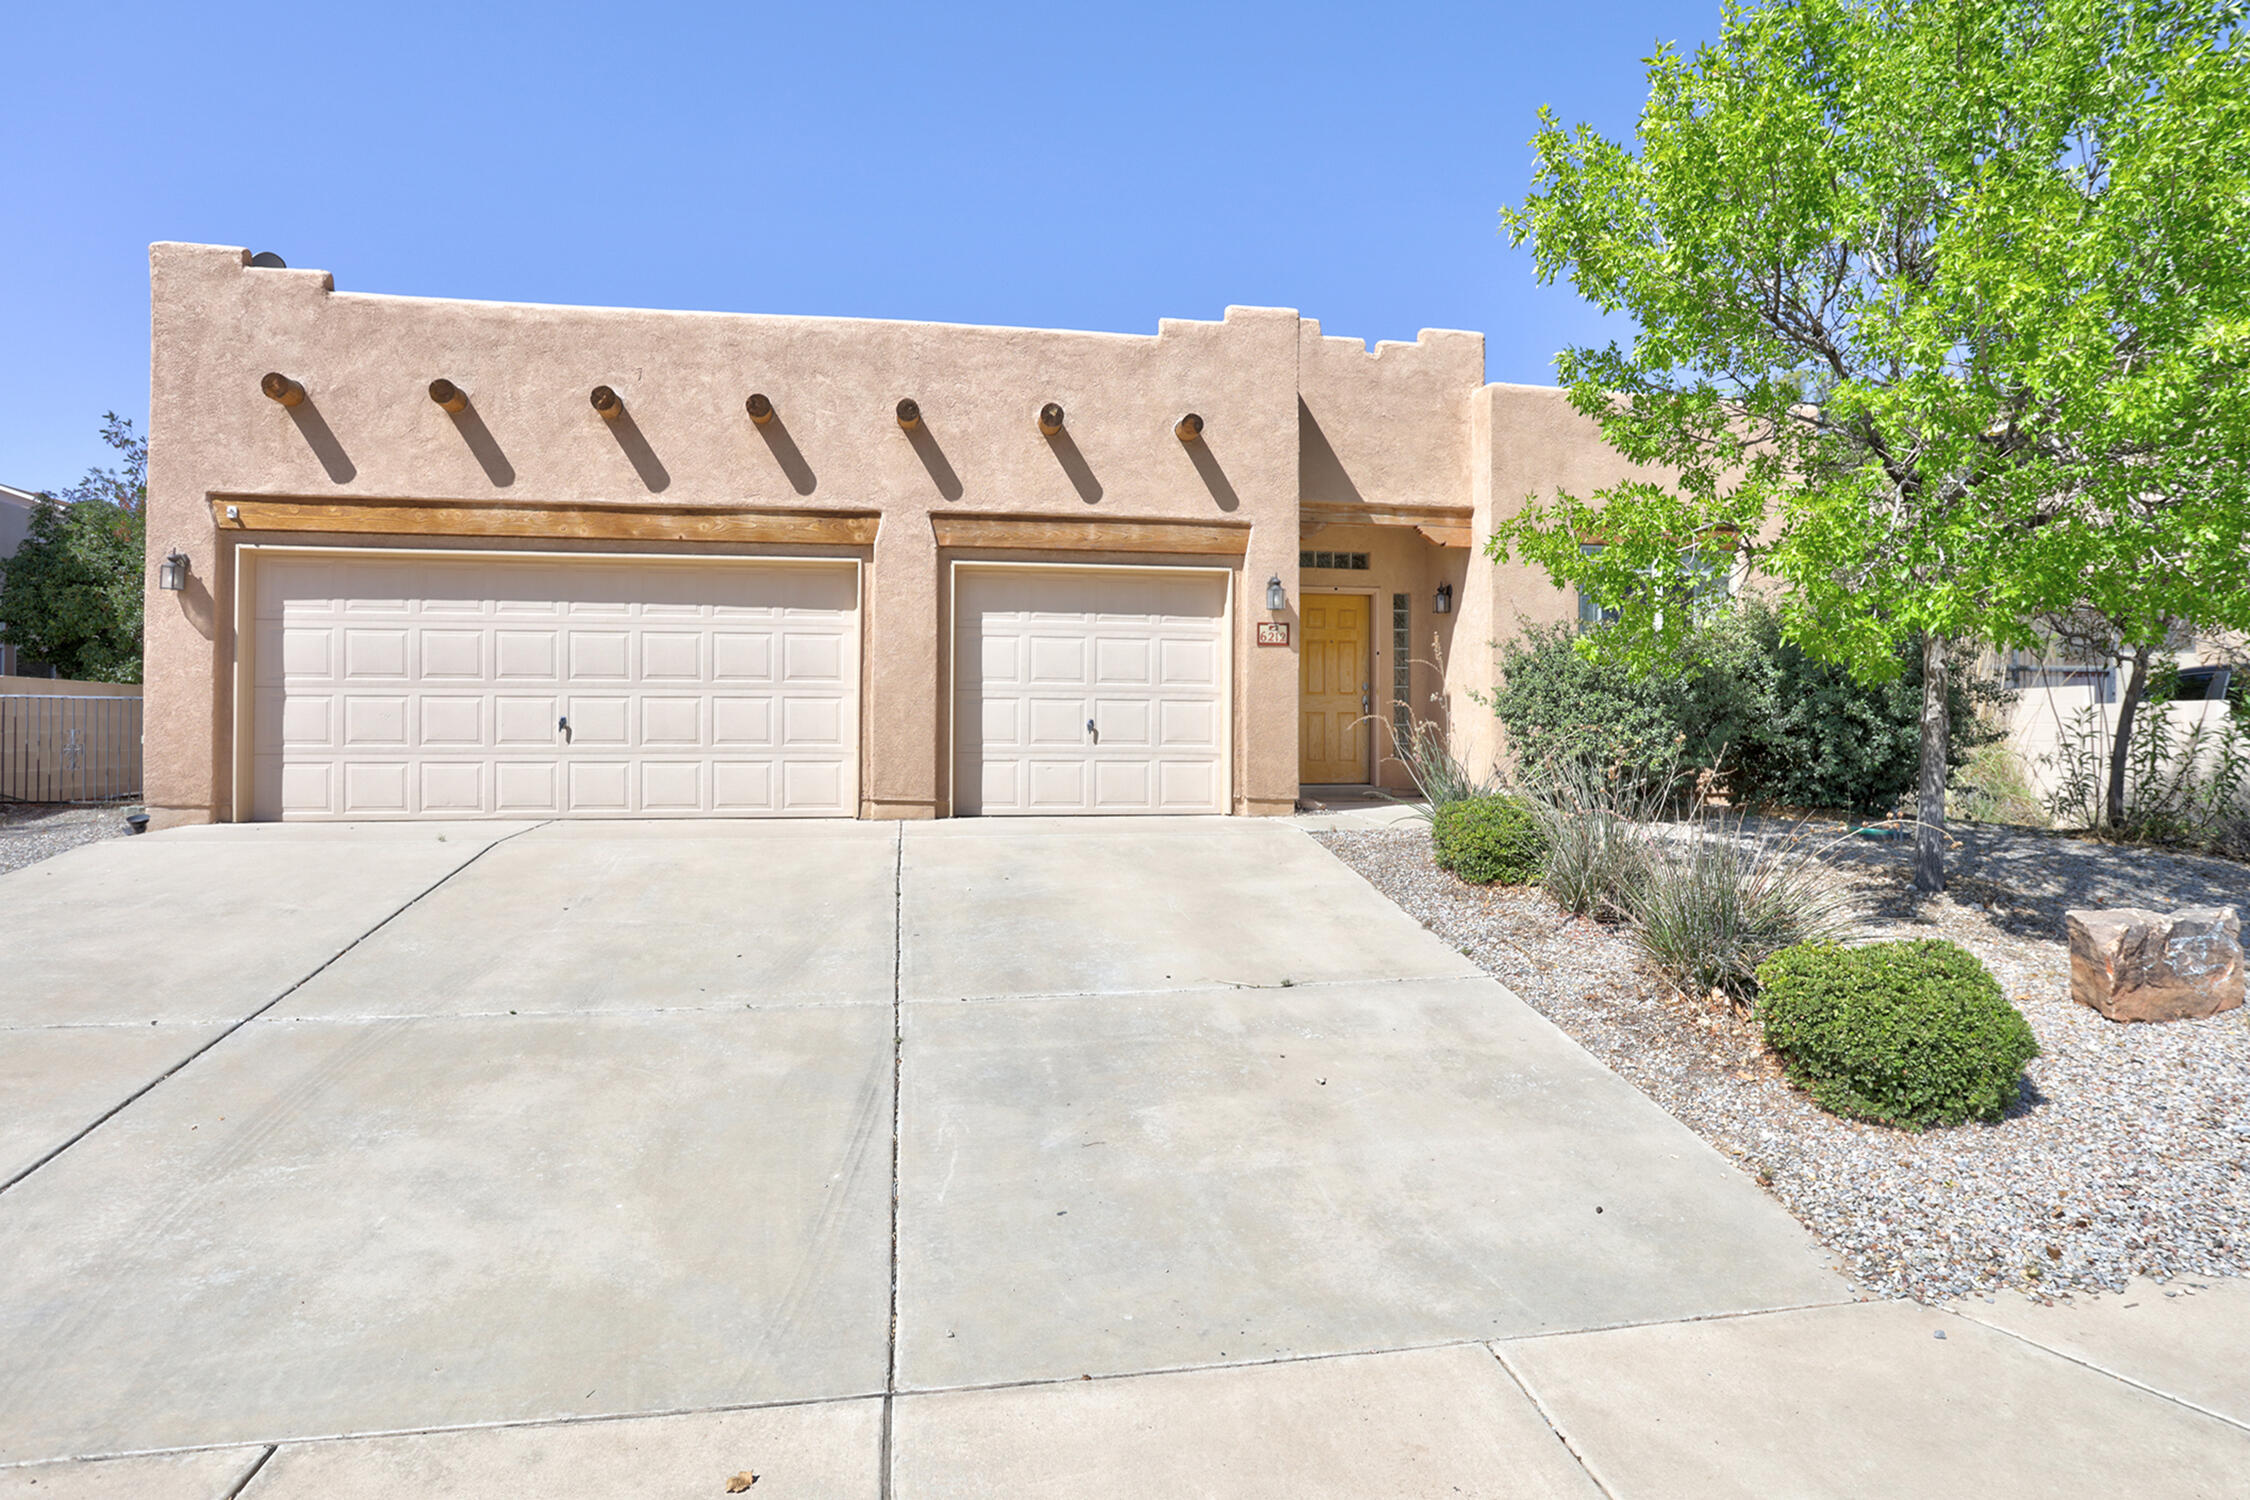 Welcome home to this 3 car garage single story home. This home features wood accents throughout, Master suite fireplace, dining room that could be used as an office, and a duel internce to the second bathroom. This home is located in north Rio Rancho close to shopping and resturants along with easy access to interstate 550 for Sante Fe or 528 to get into ABQ.